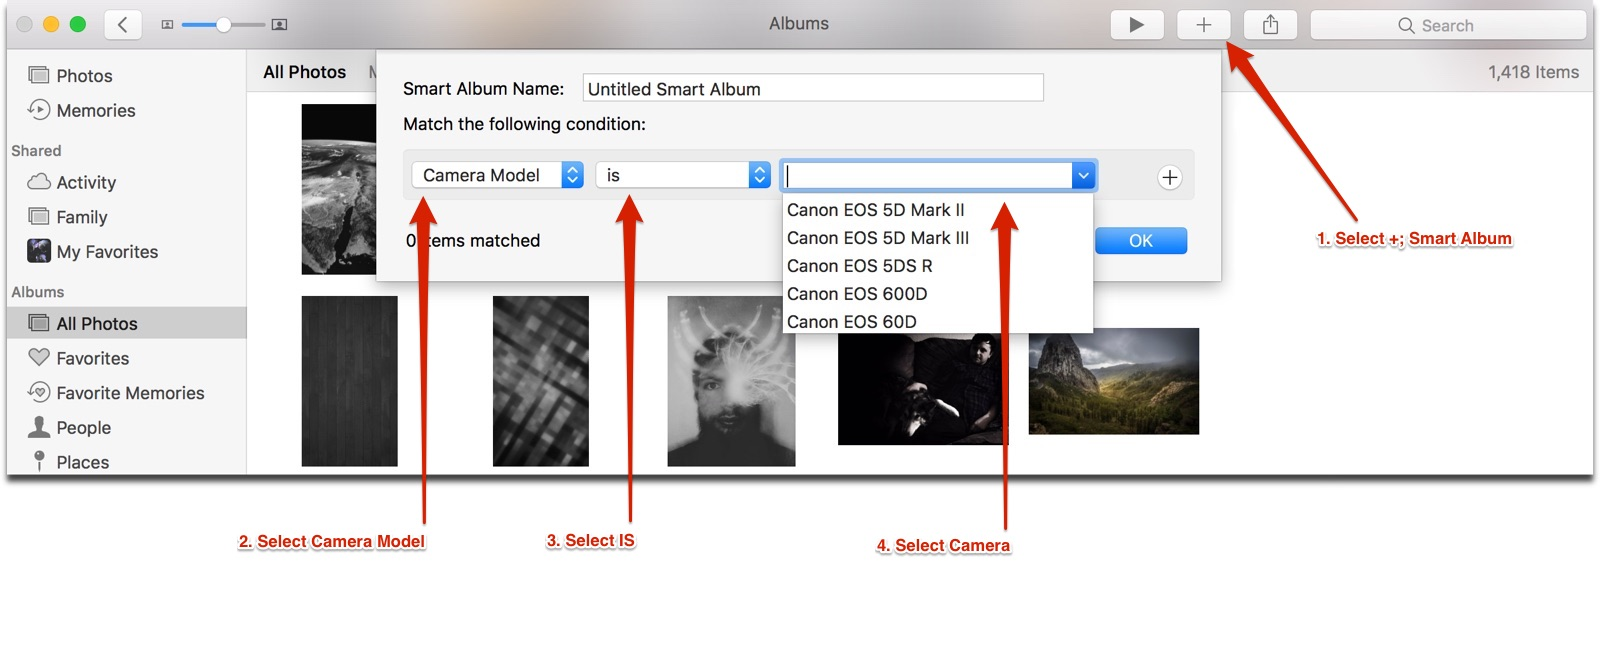 macOS Photos: Create Smart Albums Based On Camera Type - The